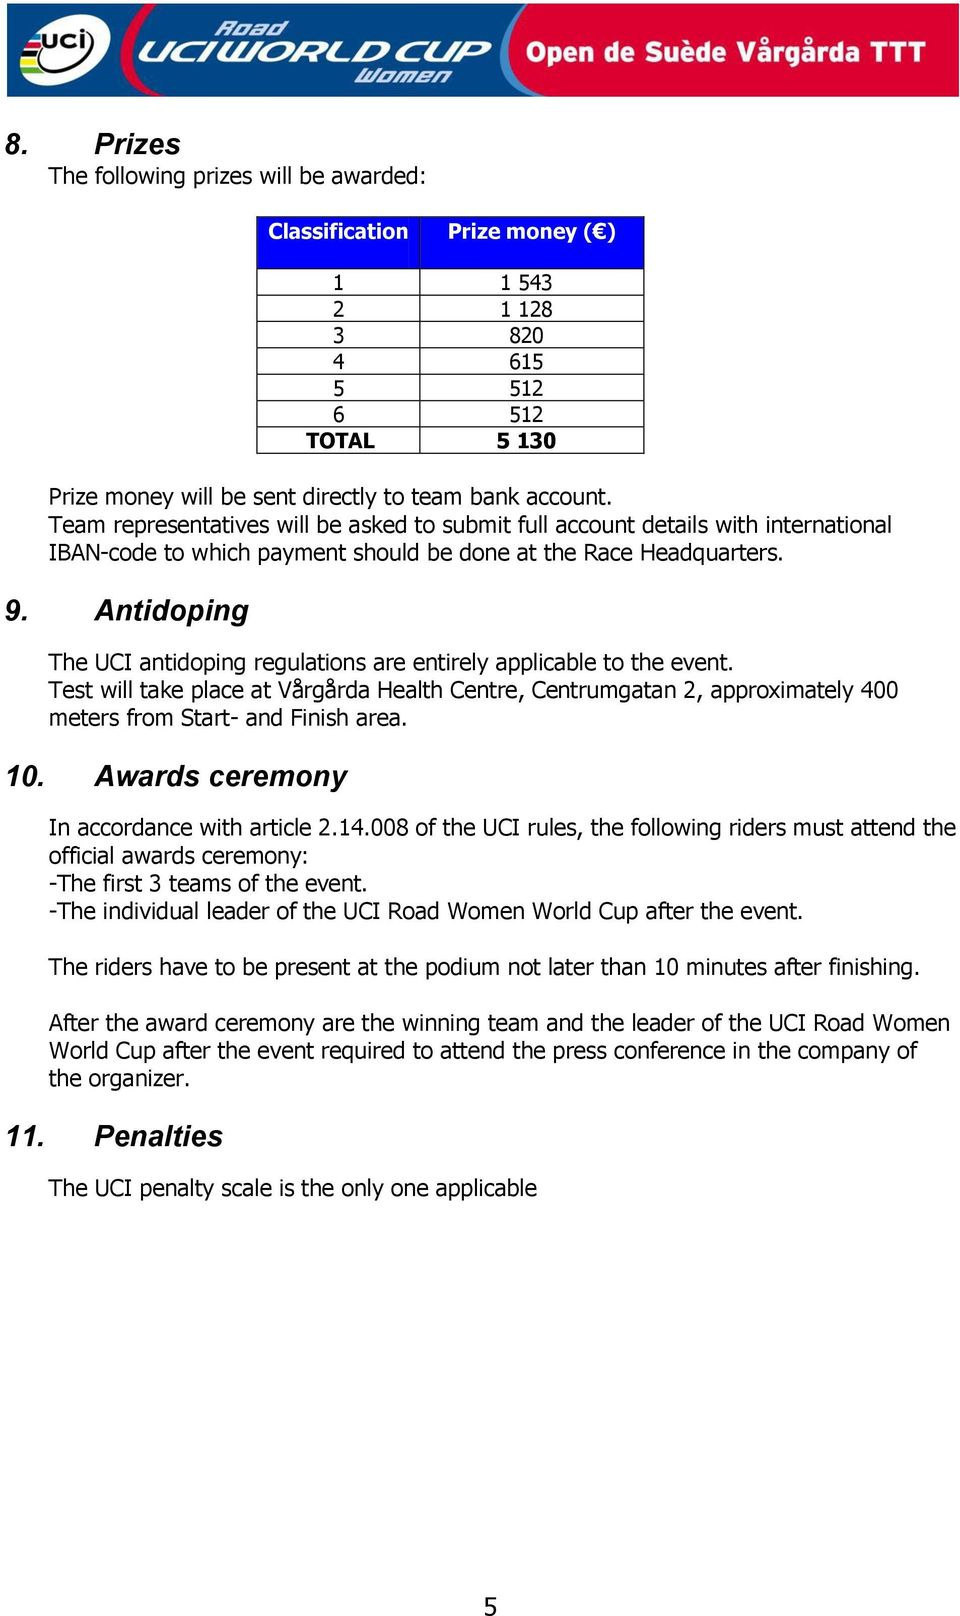 Antidoping The UCI antidoping regulations are entirely applicable to the event. Test will take place at Vårgårda Health Centre, Centrumgatan 2, approximately 400 meters from Start- and Finish area.